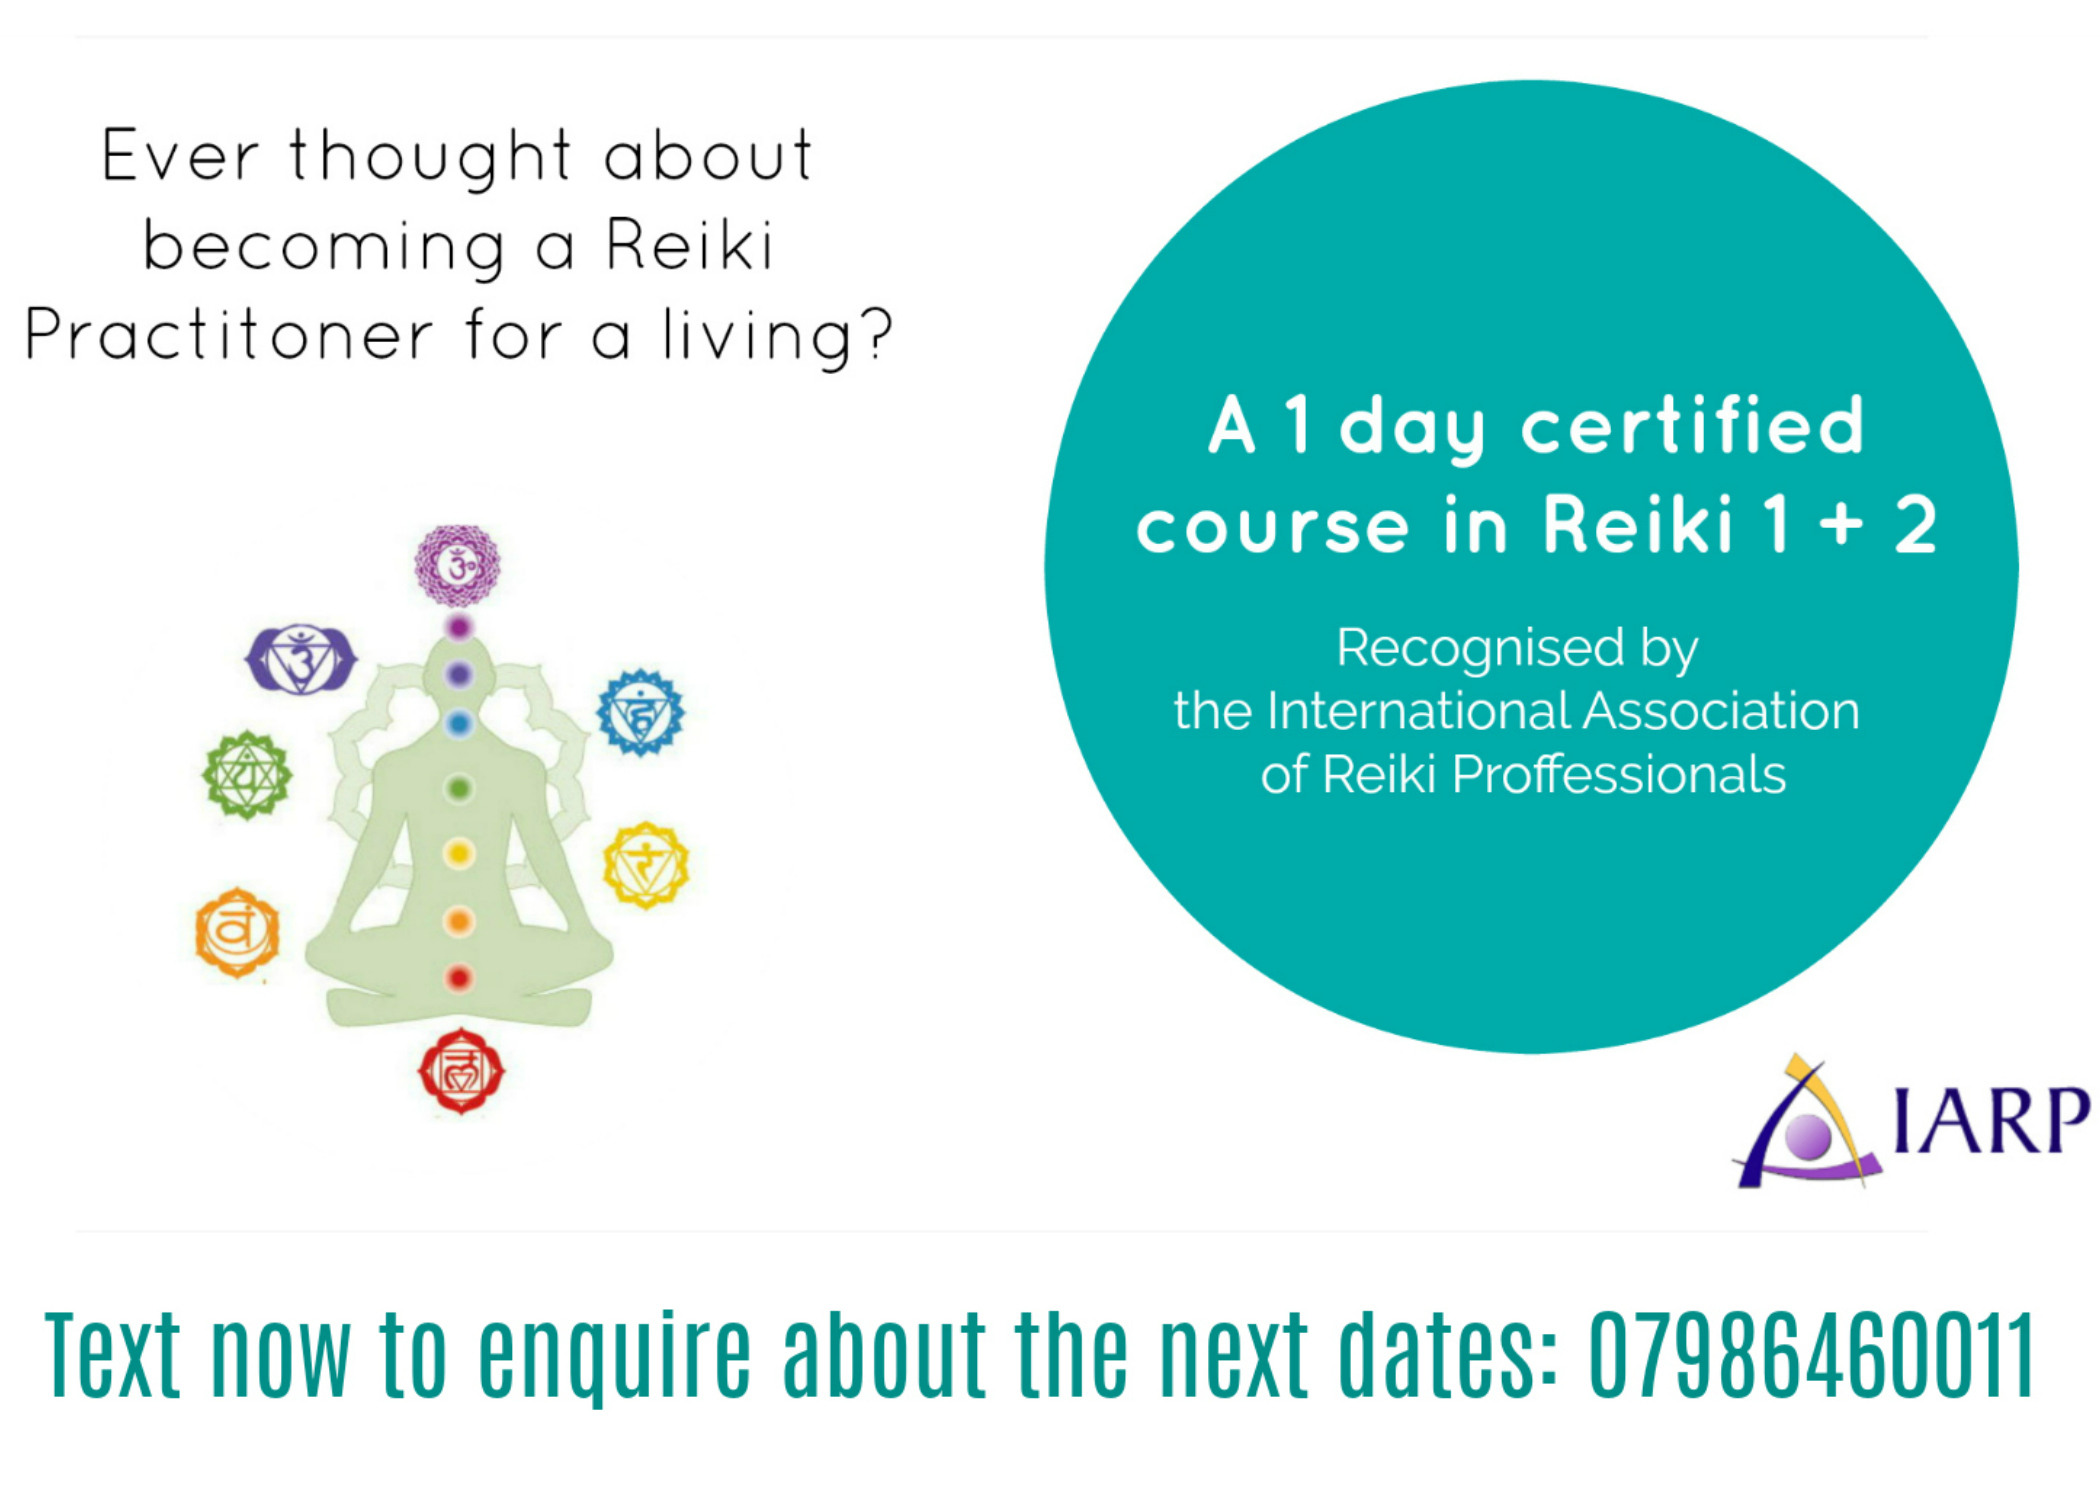 reiki healing lessons teacher brighton attunement master certificate certification level 1 2 healing chakras